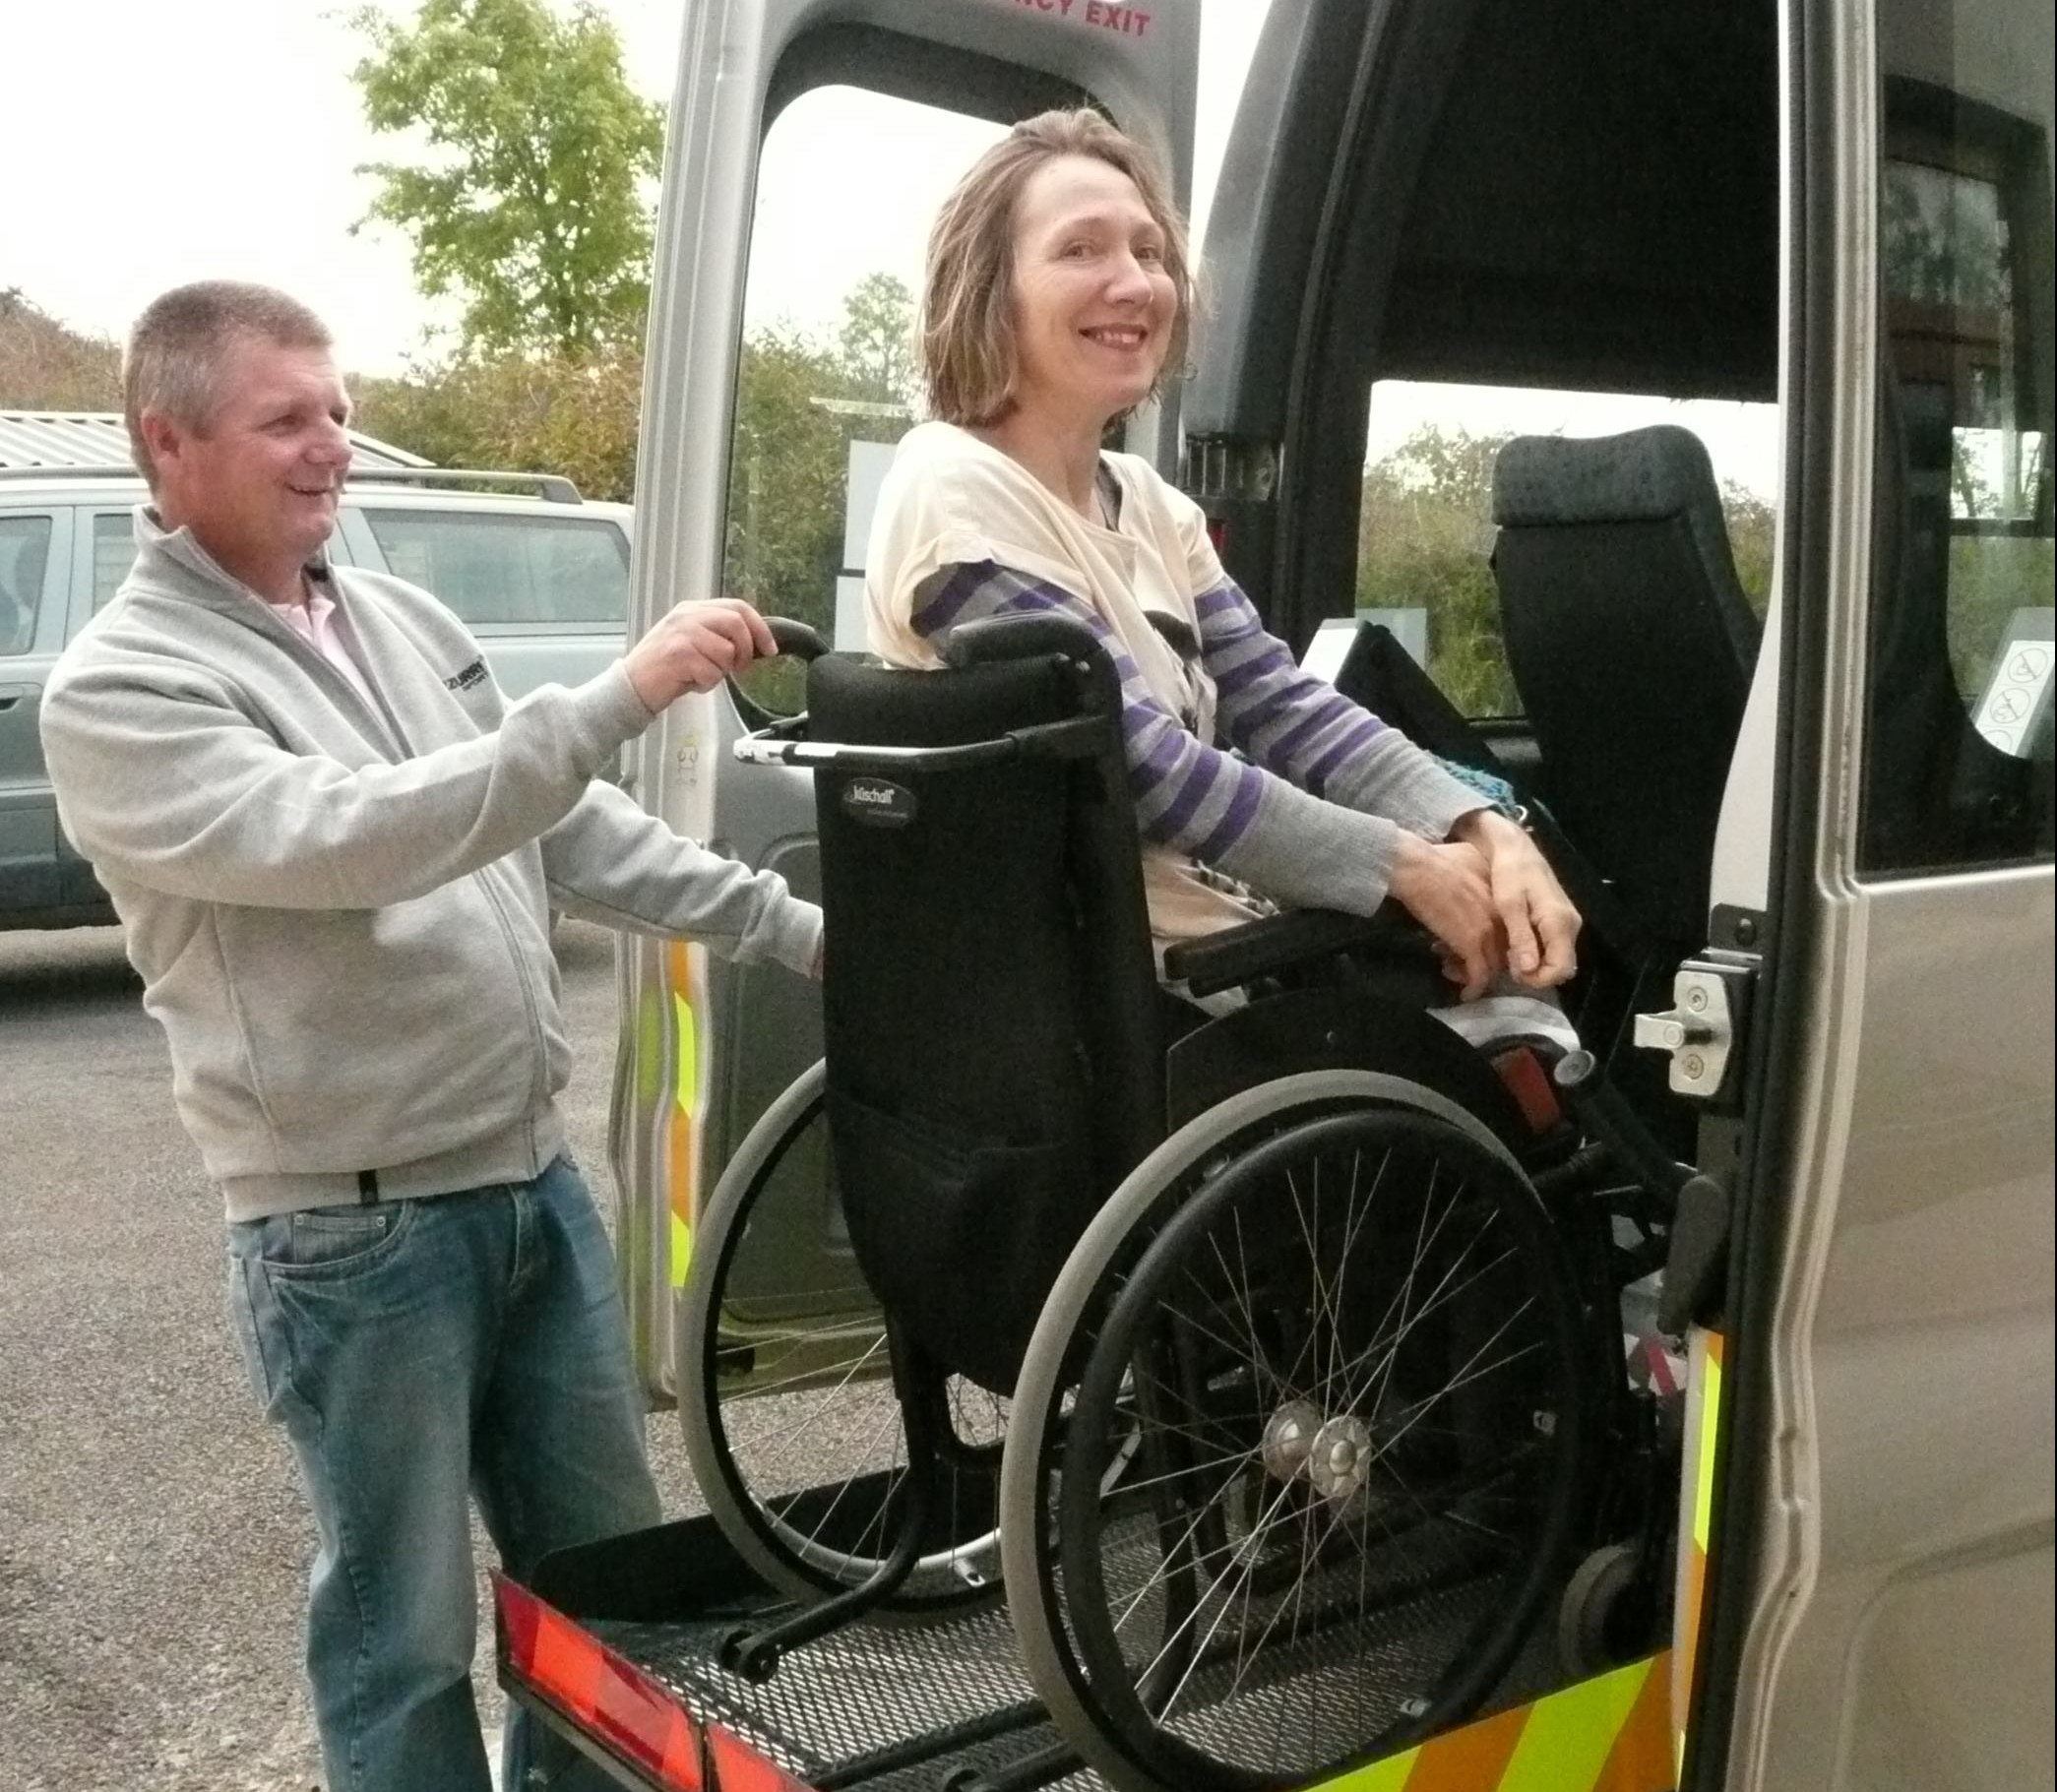 Personal Assistant assisting disabled person into accessible transport